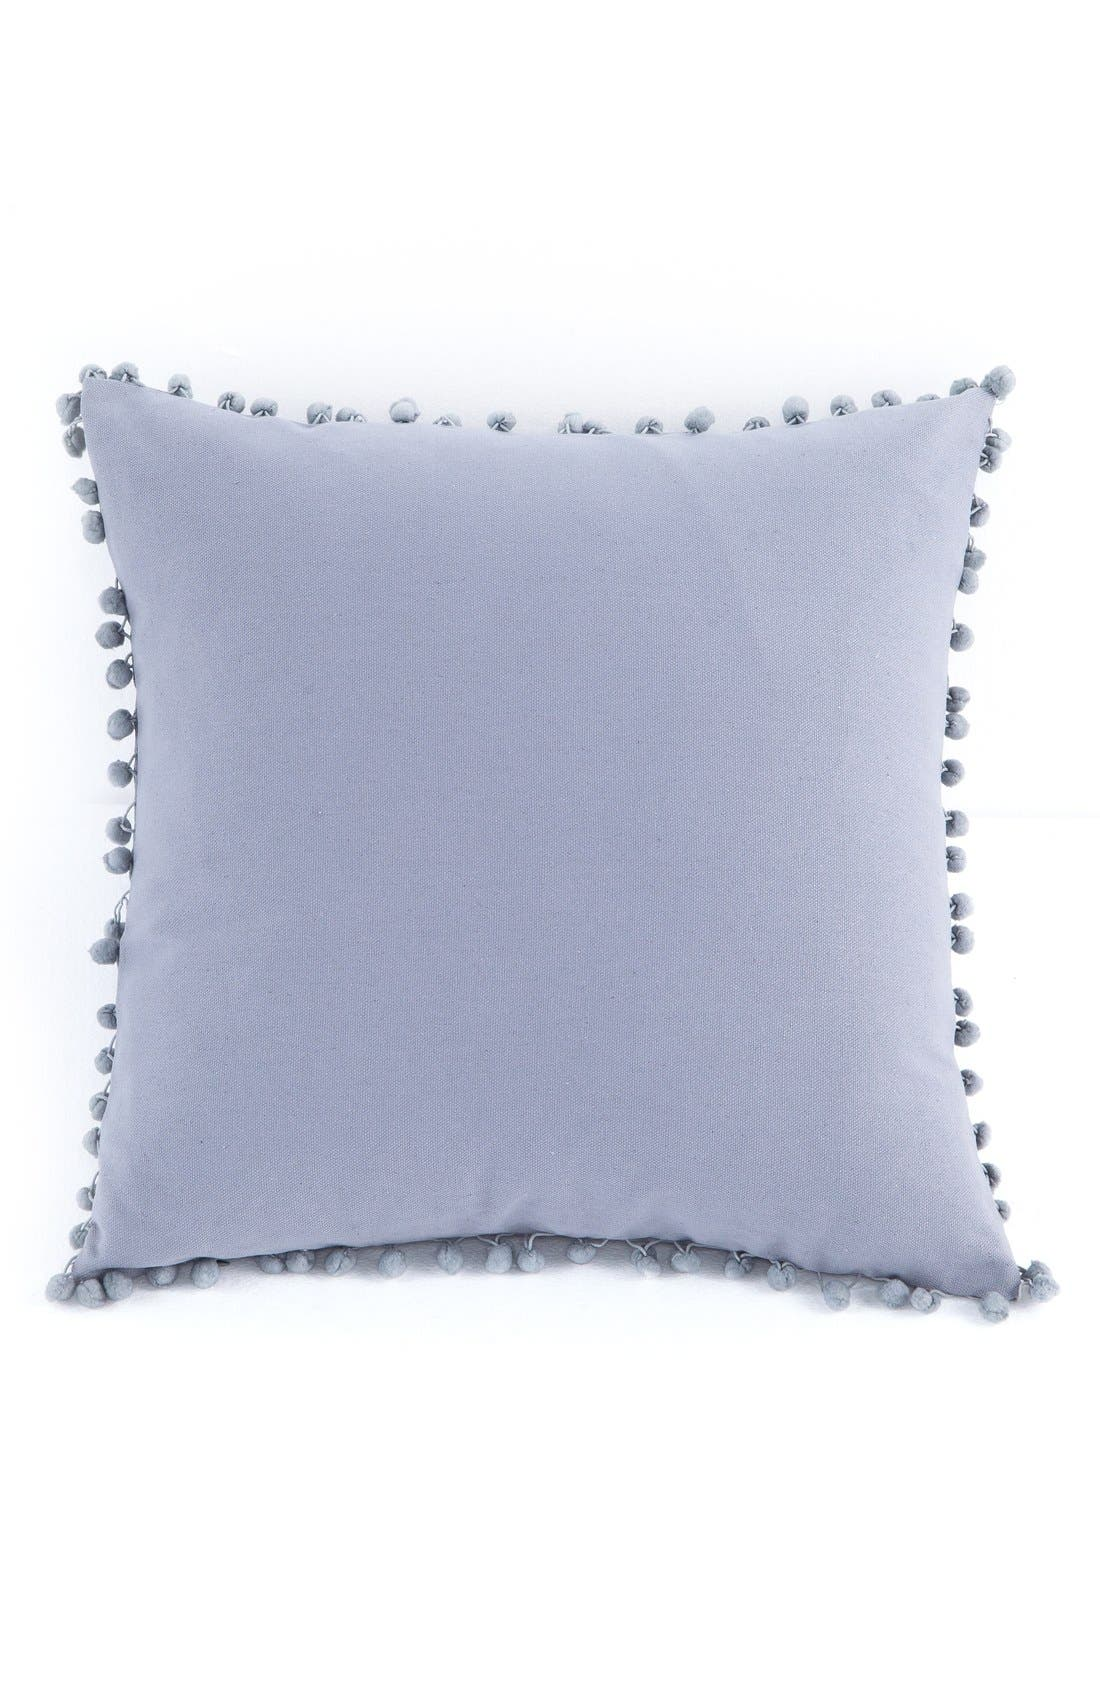 Elodie Pom Pillow,                             Main thumbnail 1, color,                             020